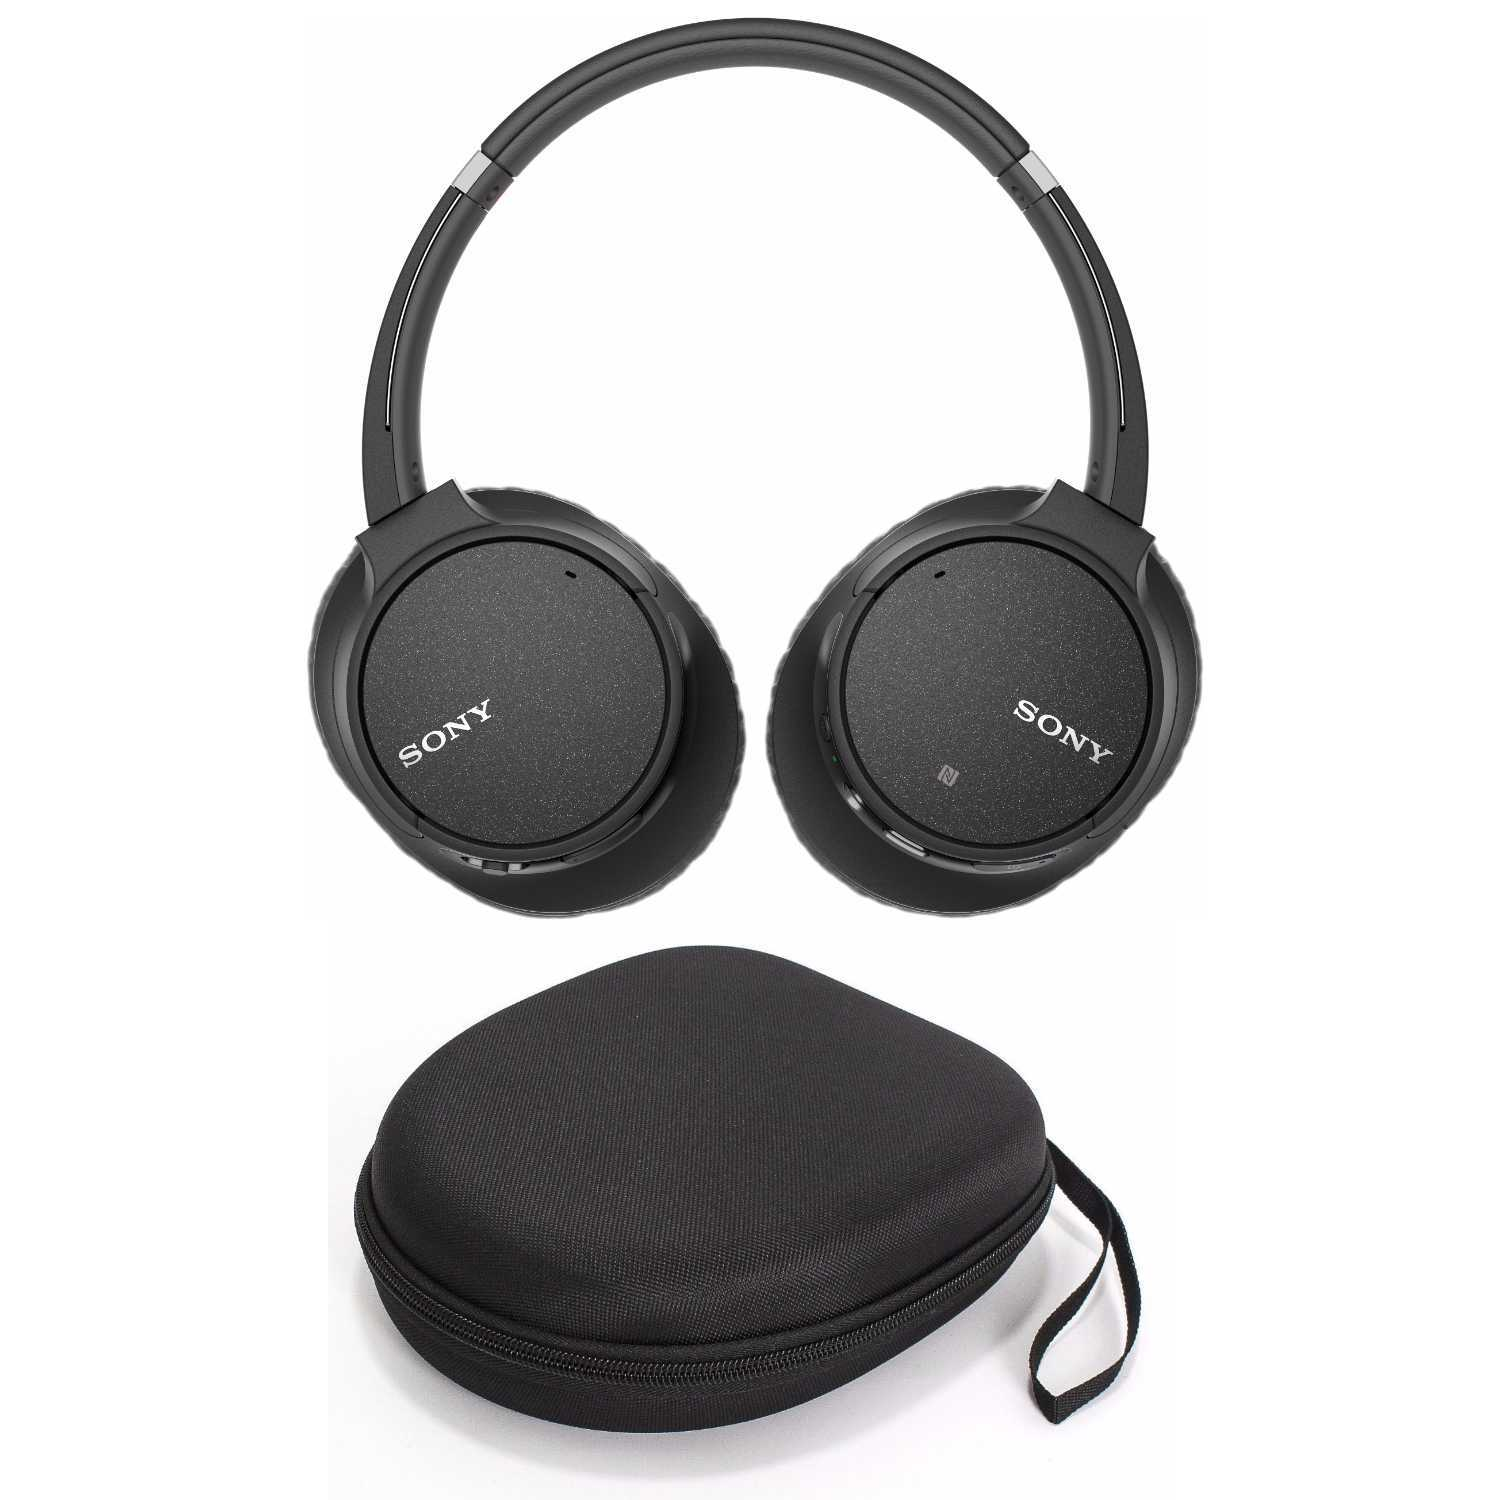 Sony WH-CH700N Wireless Noise Canceling Headphones (Black) + Carrying Case